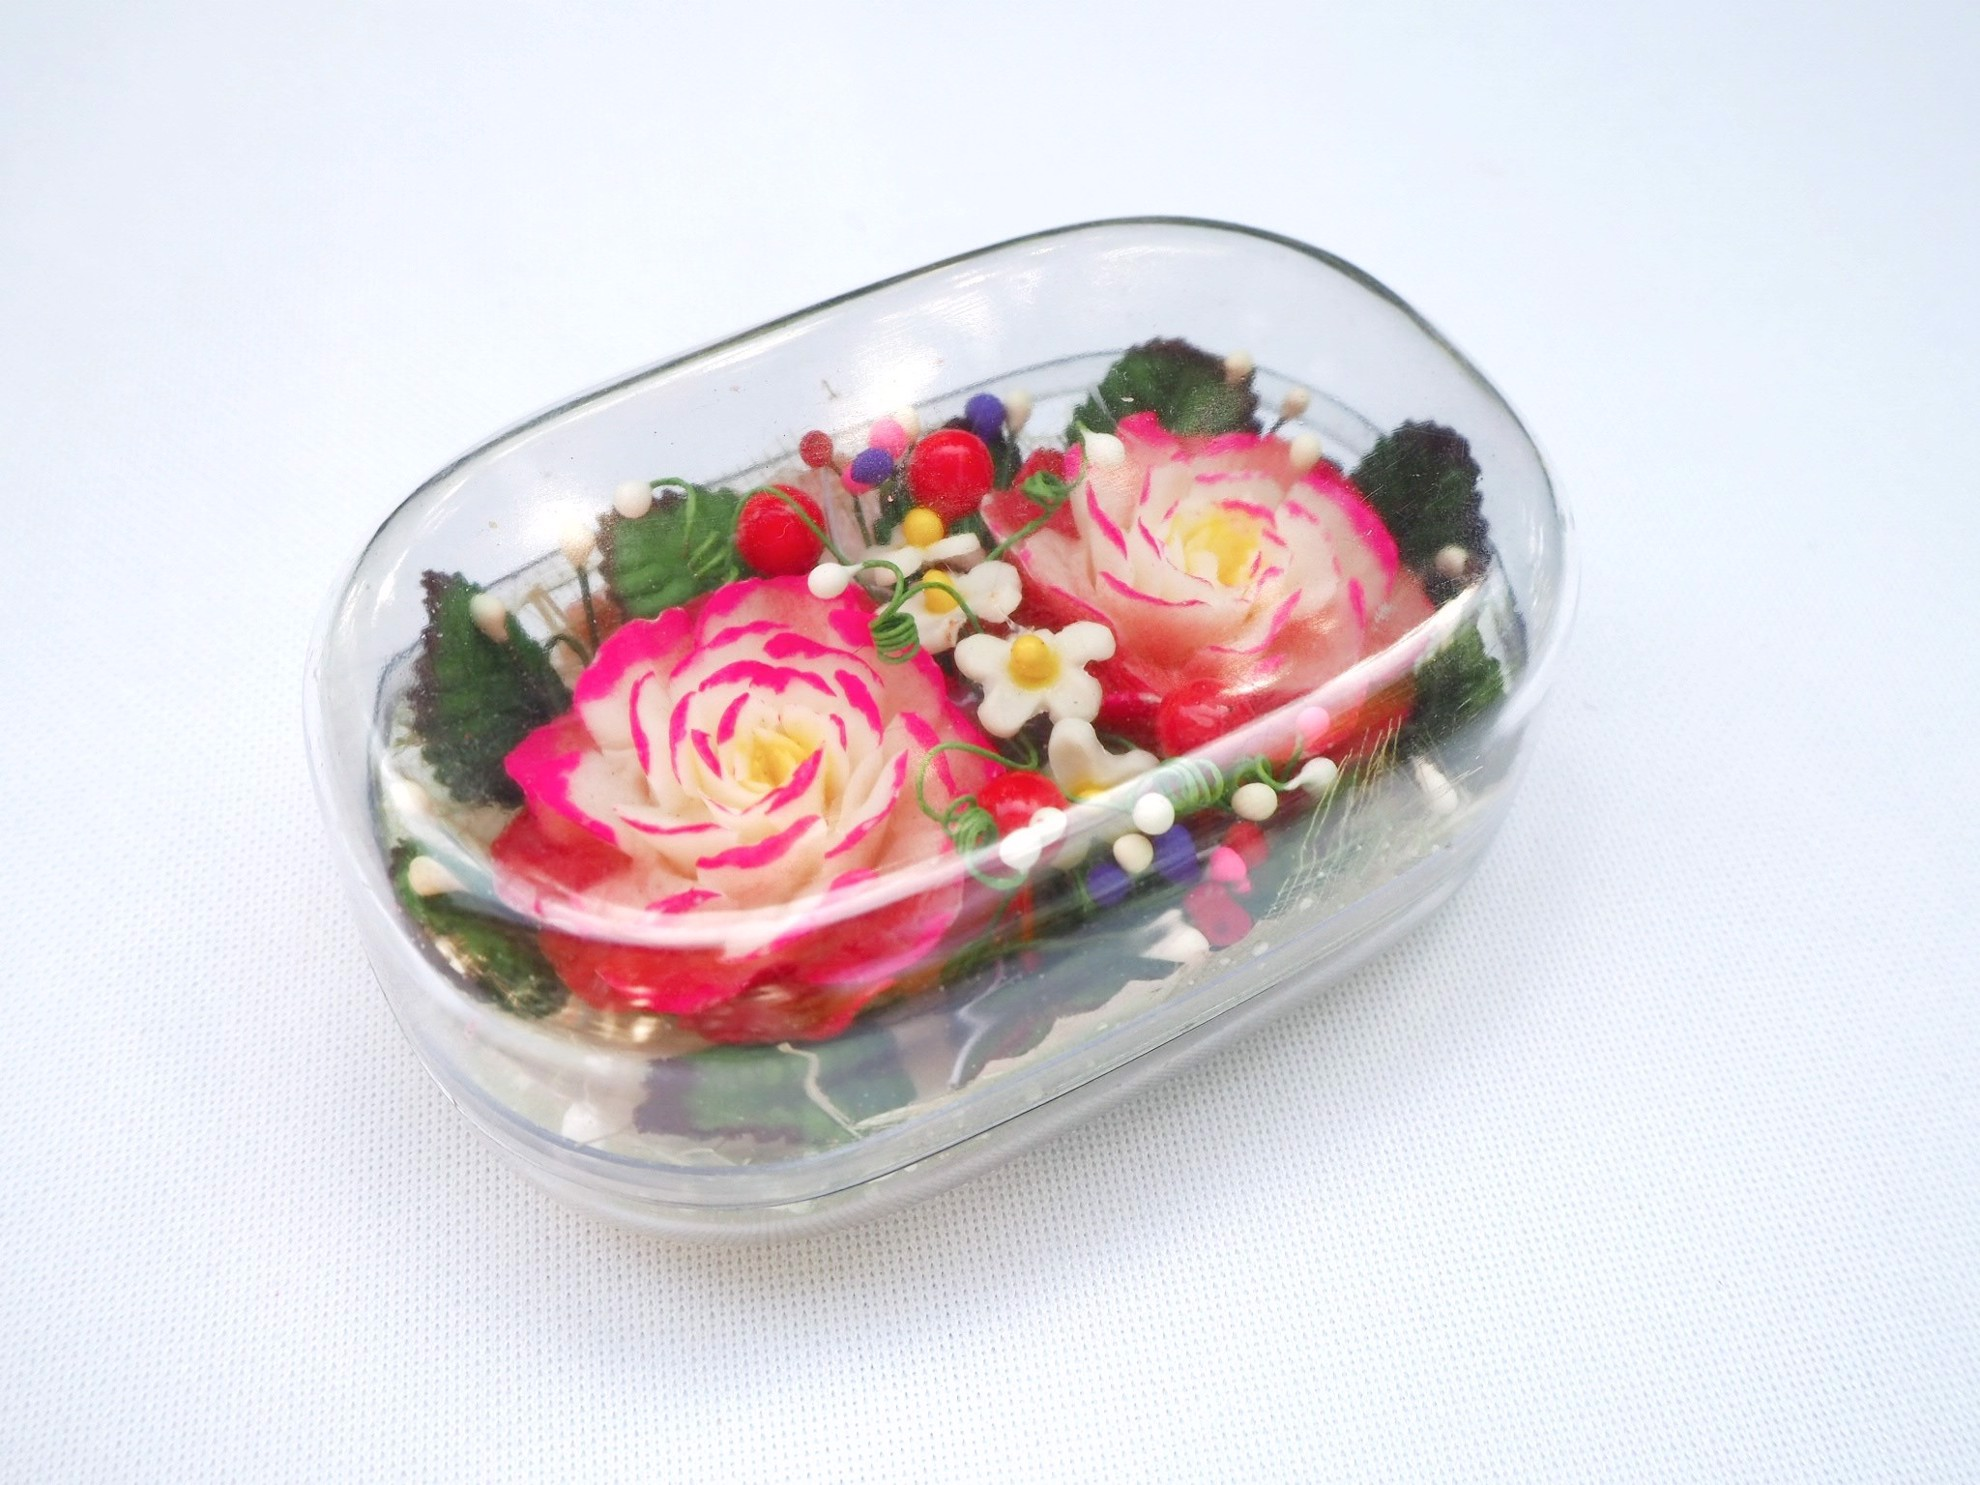 Picture of Red Roses Decorative Soap Bar, Hand Carved, Rose Aroma Essential Oil, Scented Flower Soap Carving